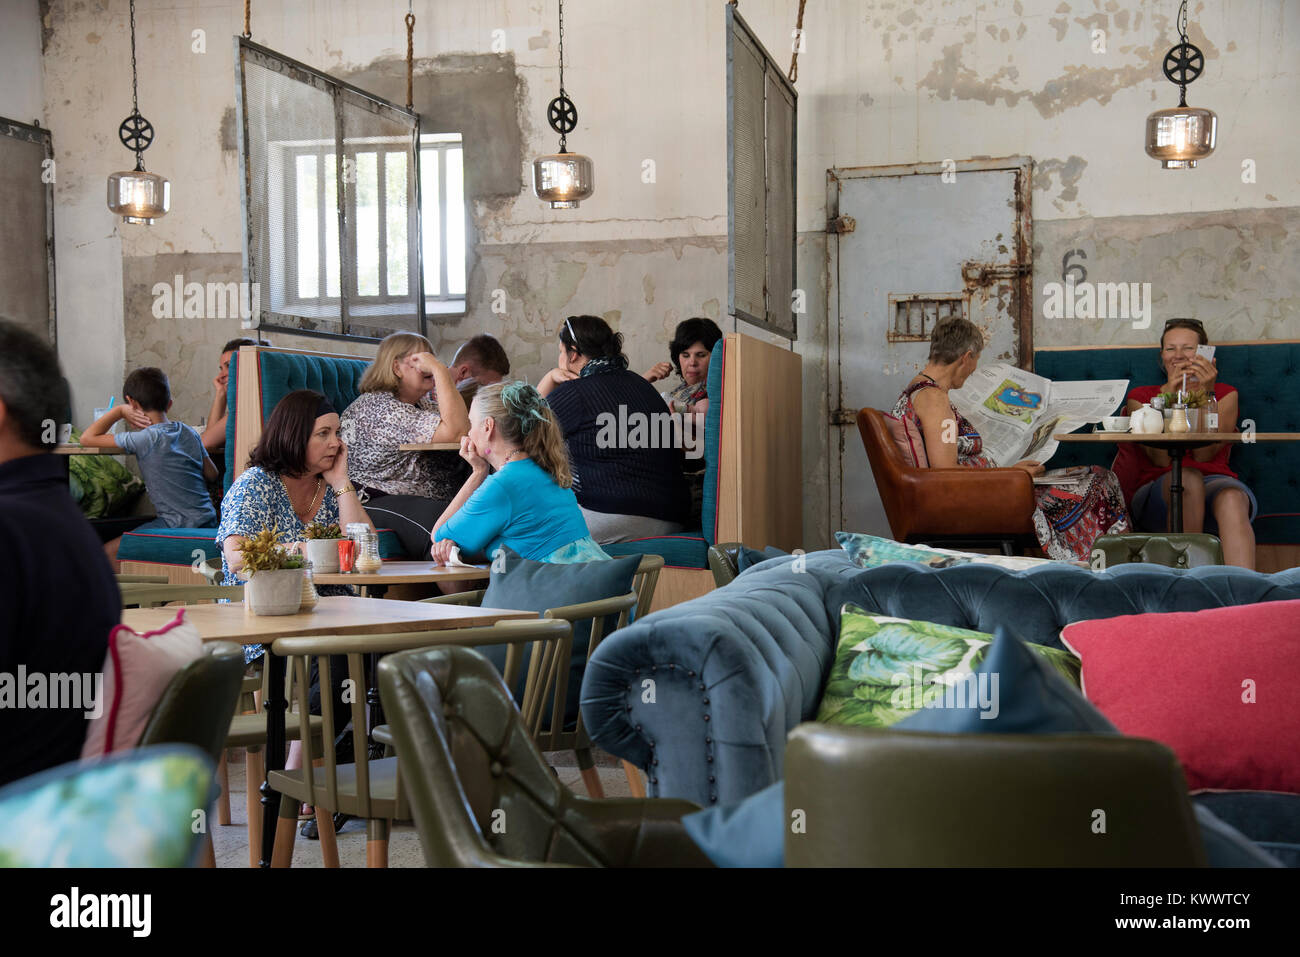 Paarl, Western Cape, South Africa. December 2017. Interior of a restaurant situated in the old jailhouse. - Stock Image